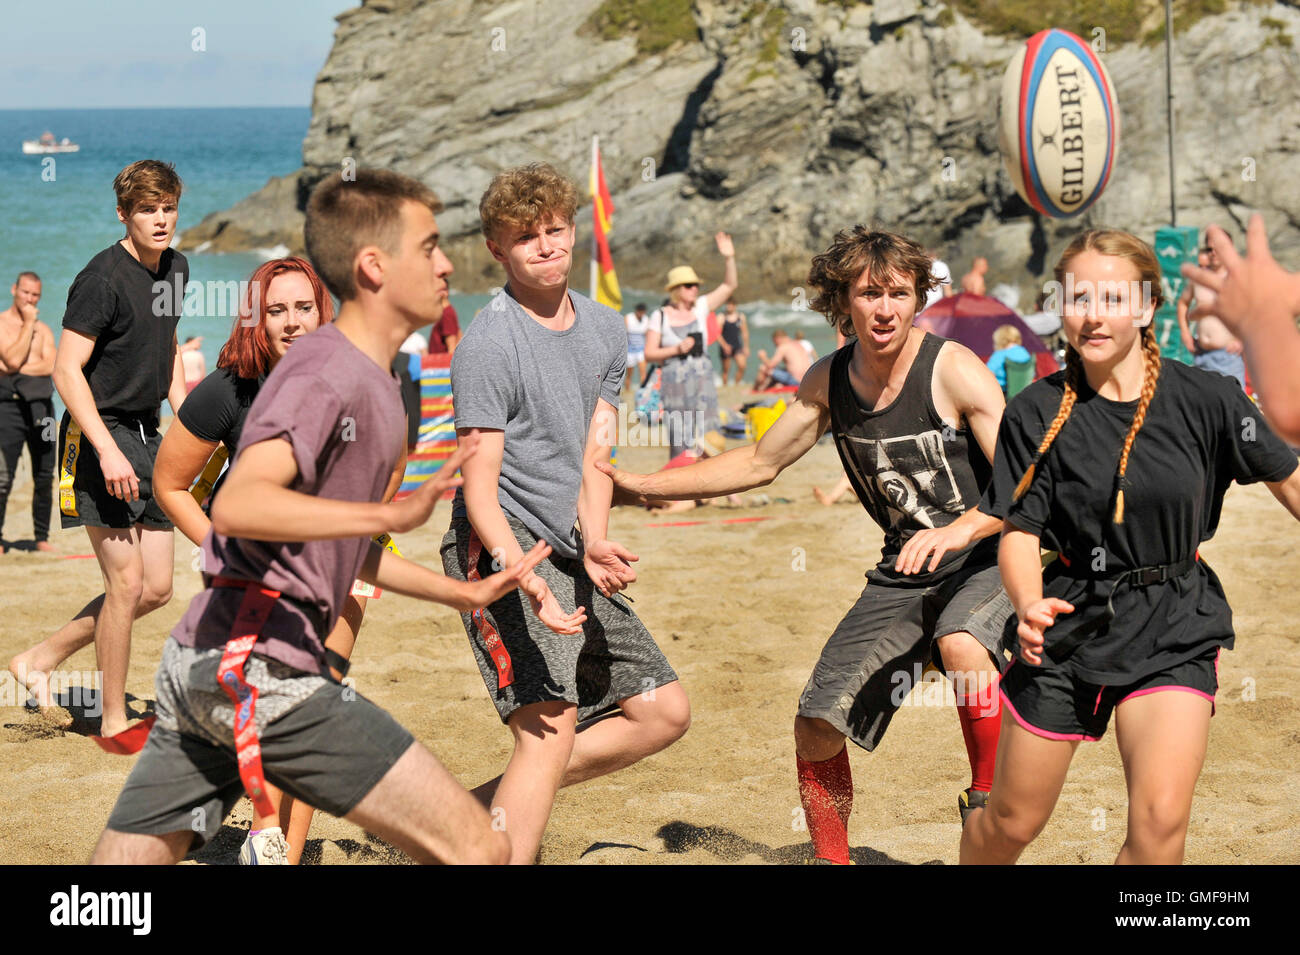 Newquay, UK. 26th Aug, 2016. Lusty Glaze, Newquay, Cornwall. 26th August, 2016. Under the blazing sun teams of all - Stock Image